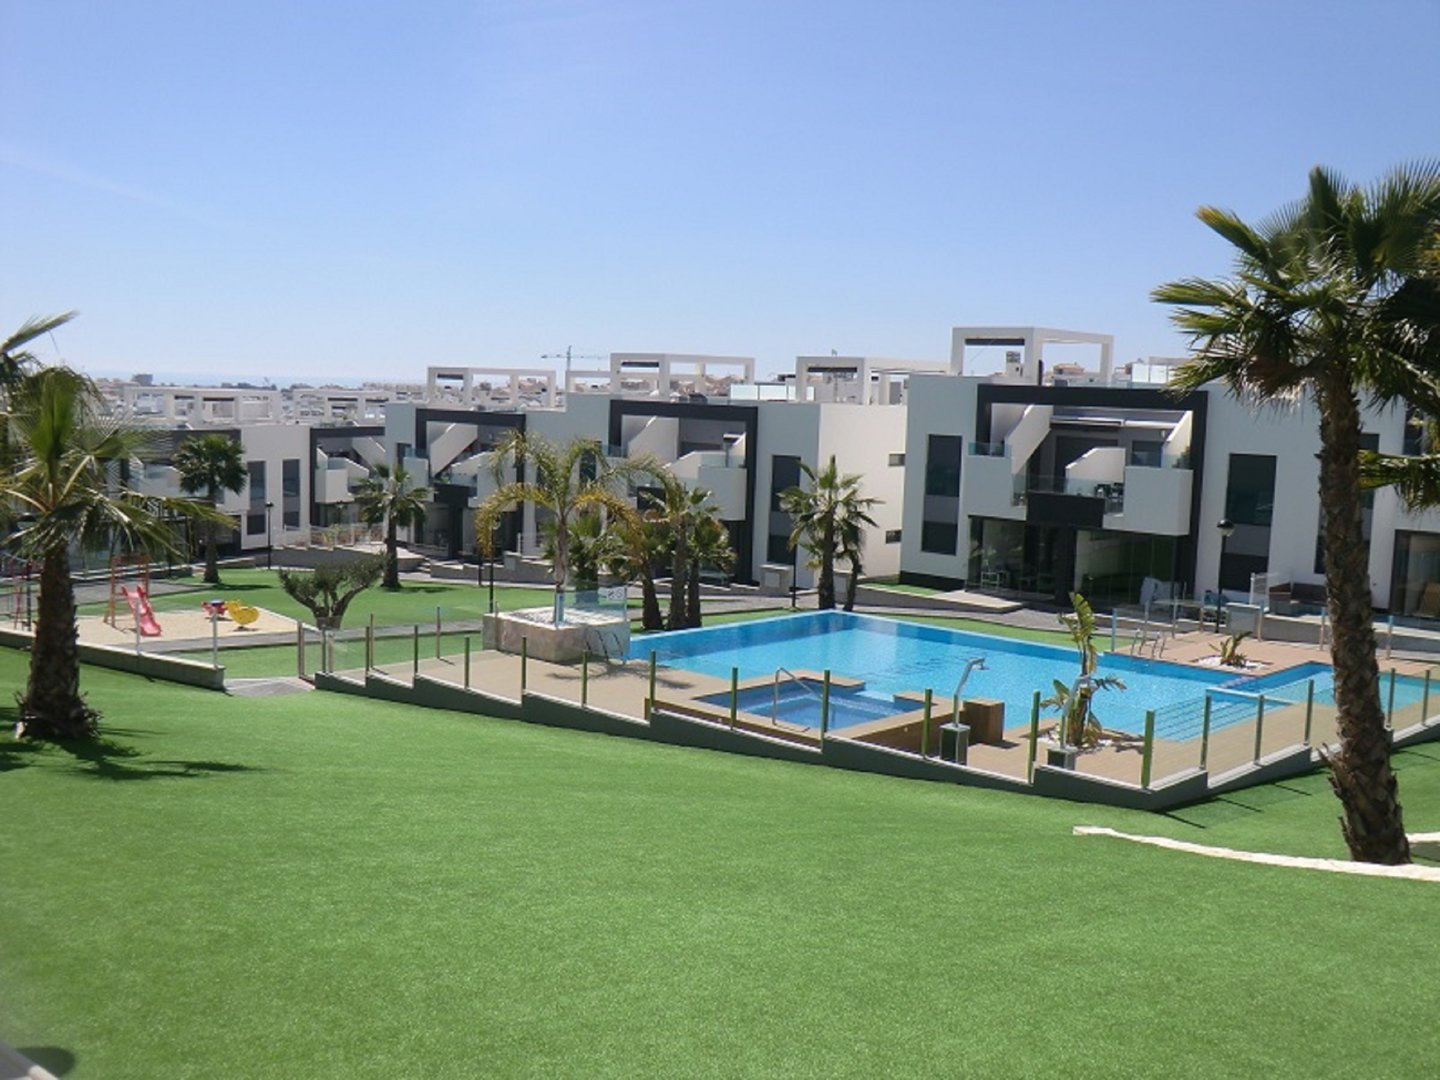 Casas Holiday Mediterraneo - 12